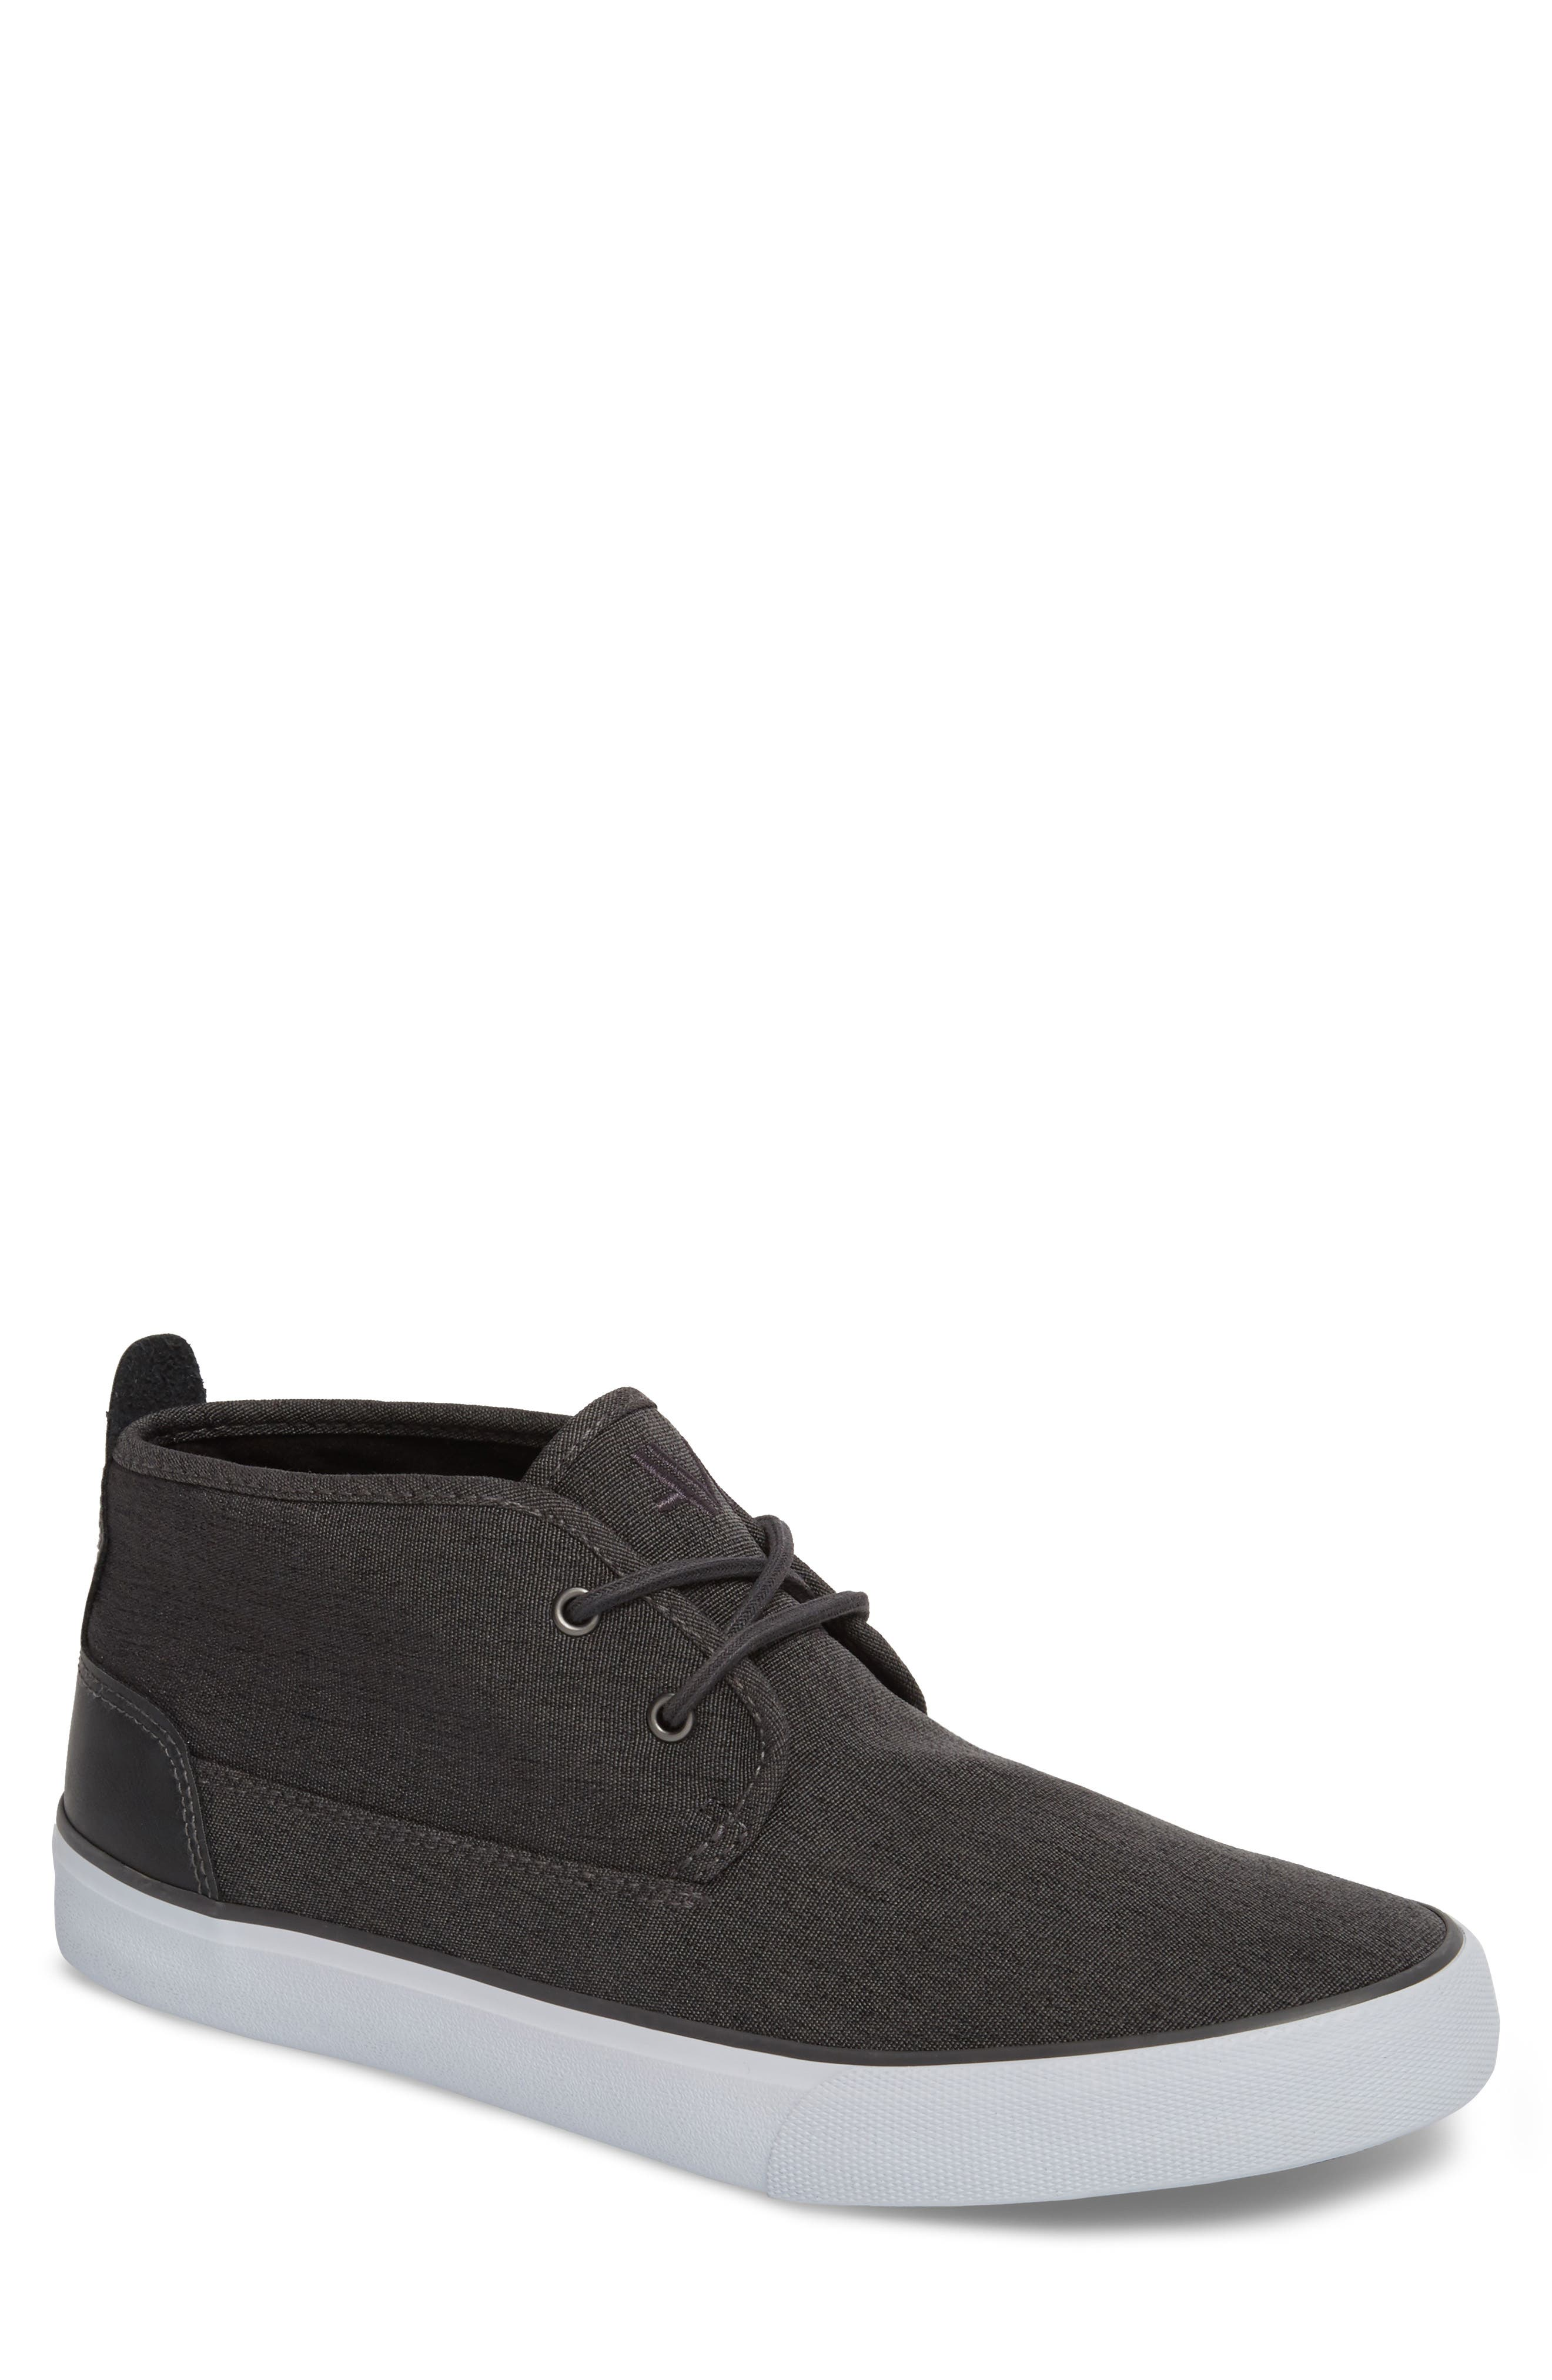 Reade Chukka Sneaker,                             Main thumbnail 1, color,                             027